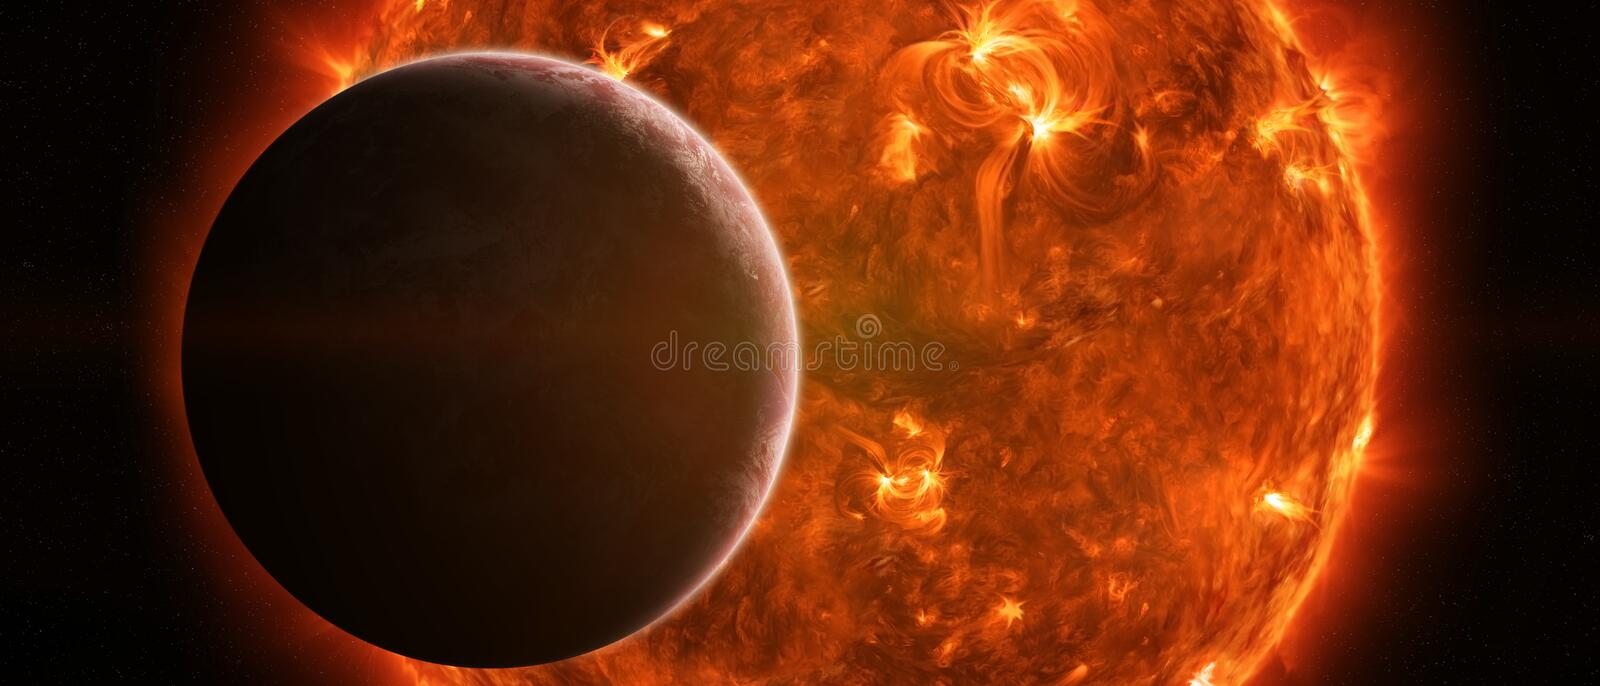 Exploding sun in space close to planet Earth. Sun exploding close to inhabited planet Earth royalty free illustration